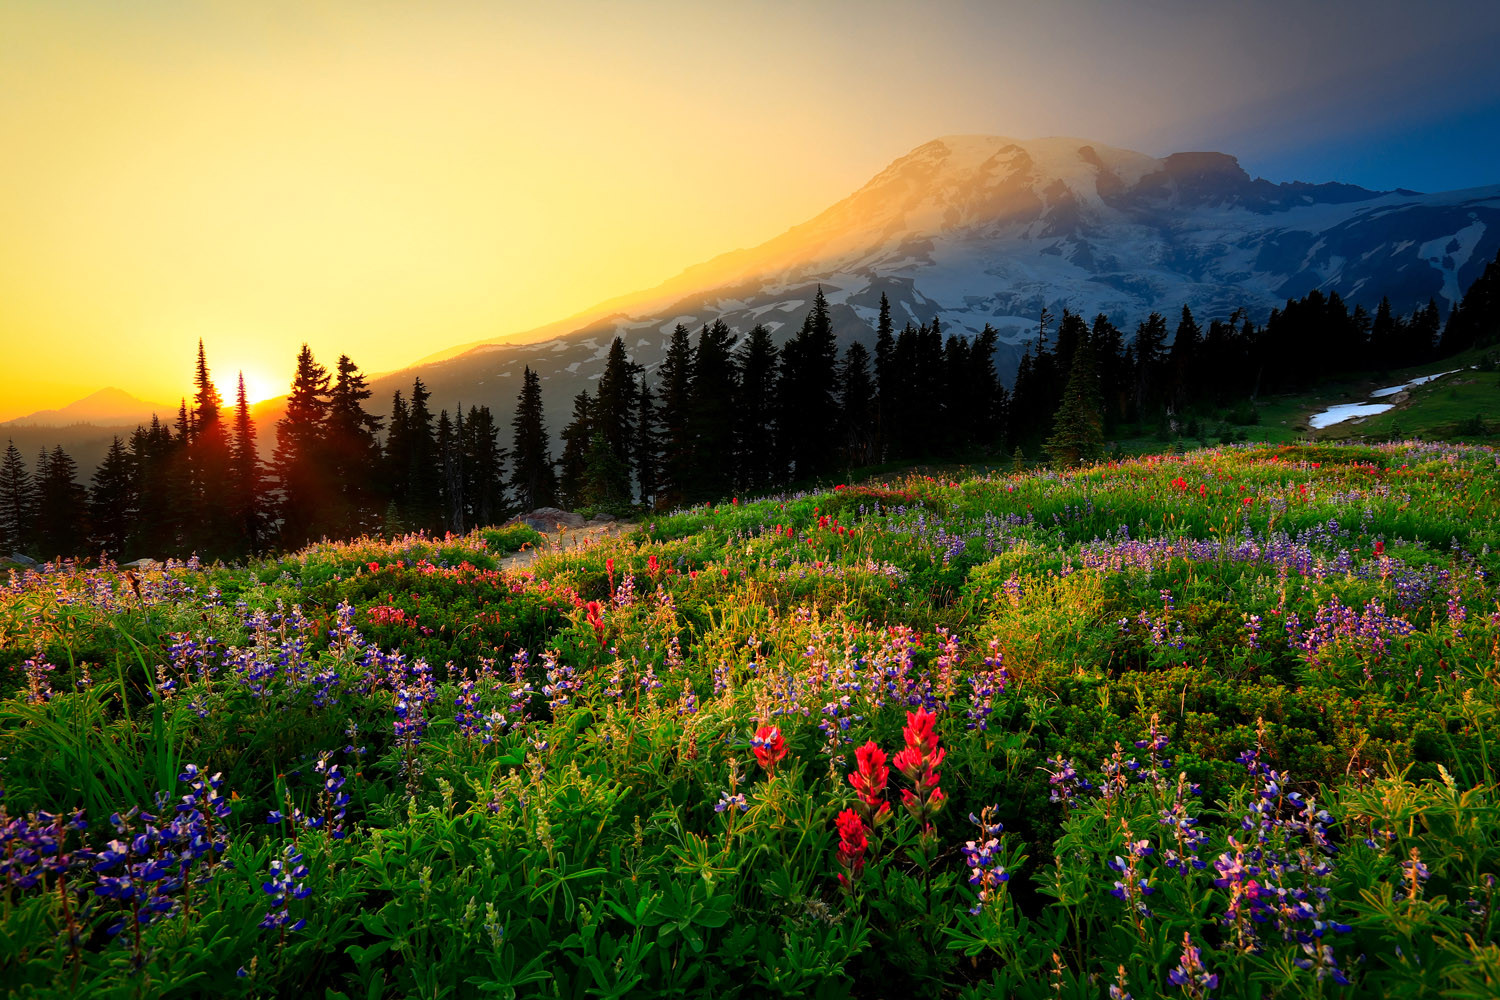 Mount-Rainier-Sunset-In-Paradise.jpg